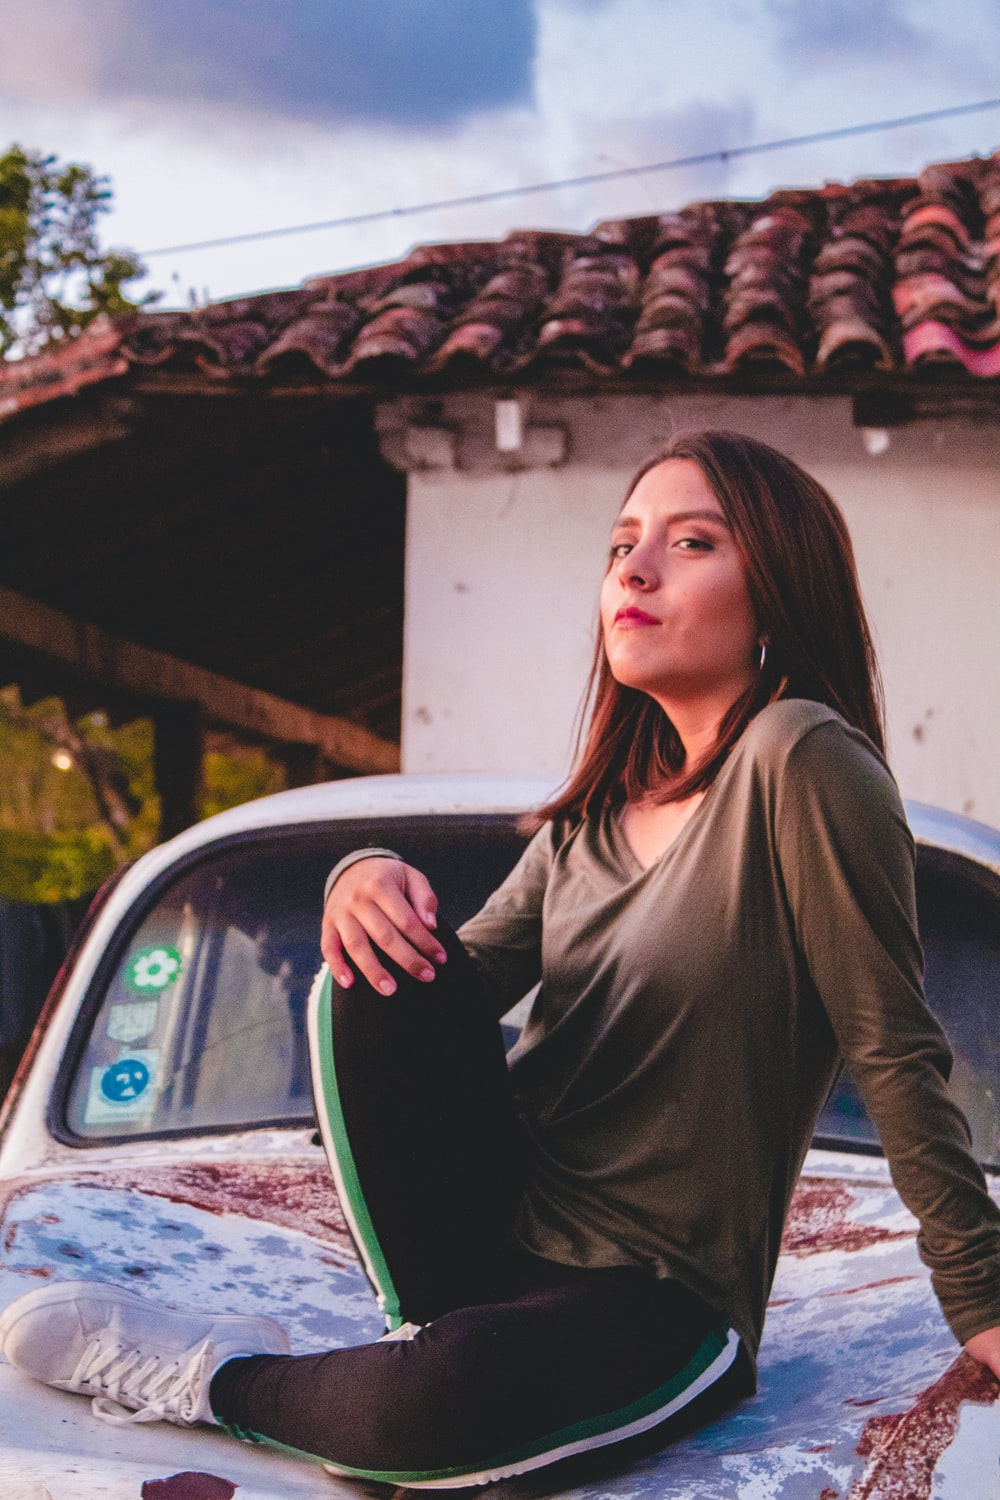 woman sitting on vehicle near house during daytime